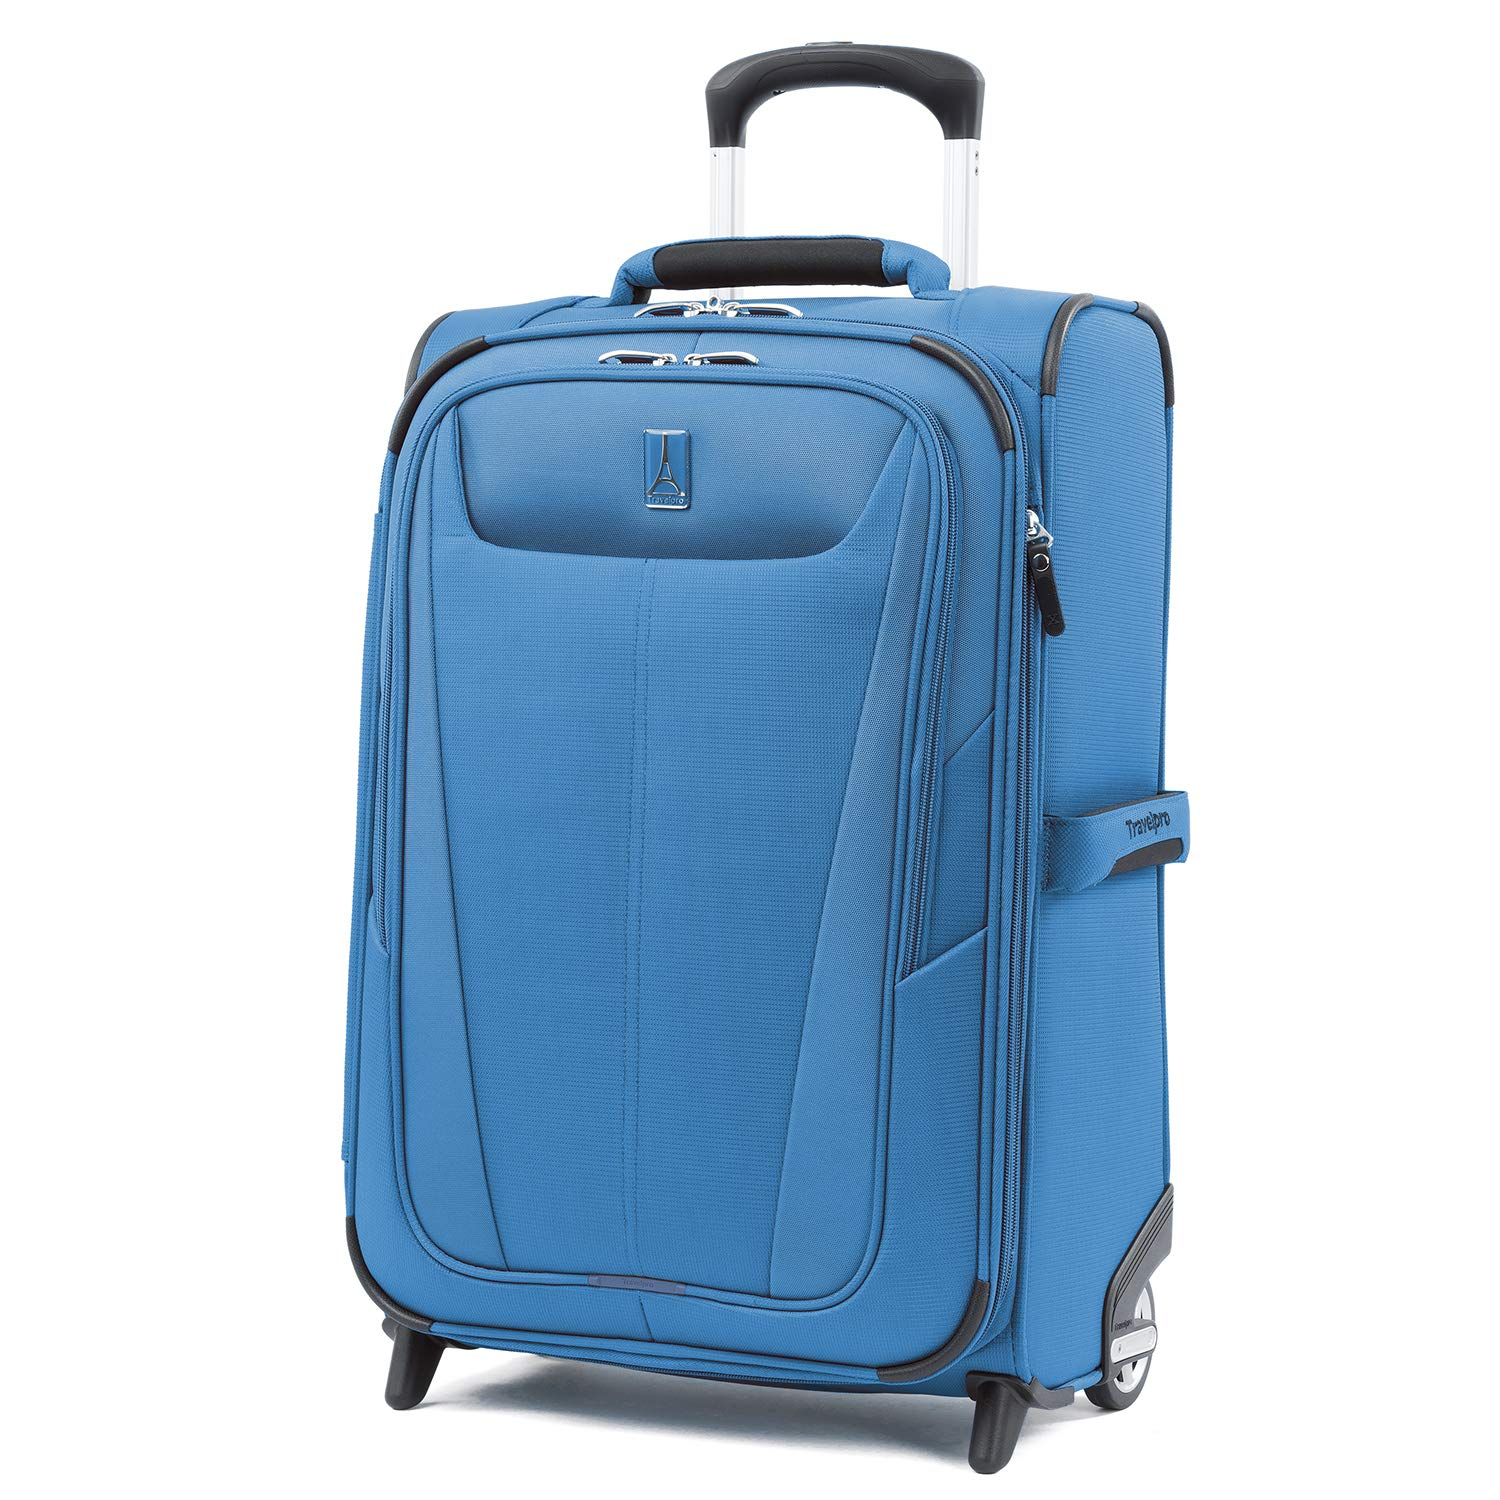 The TravelPro Maxlite 5 22 Expandable Rollaboard Suitcase travel product recommended by Nicole Graber on Lifney.